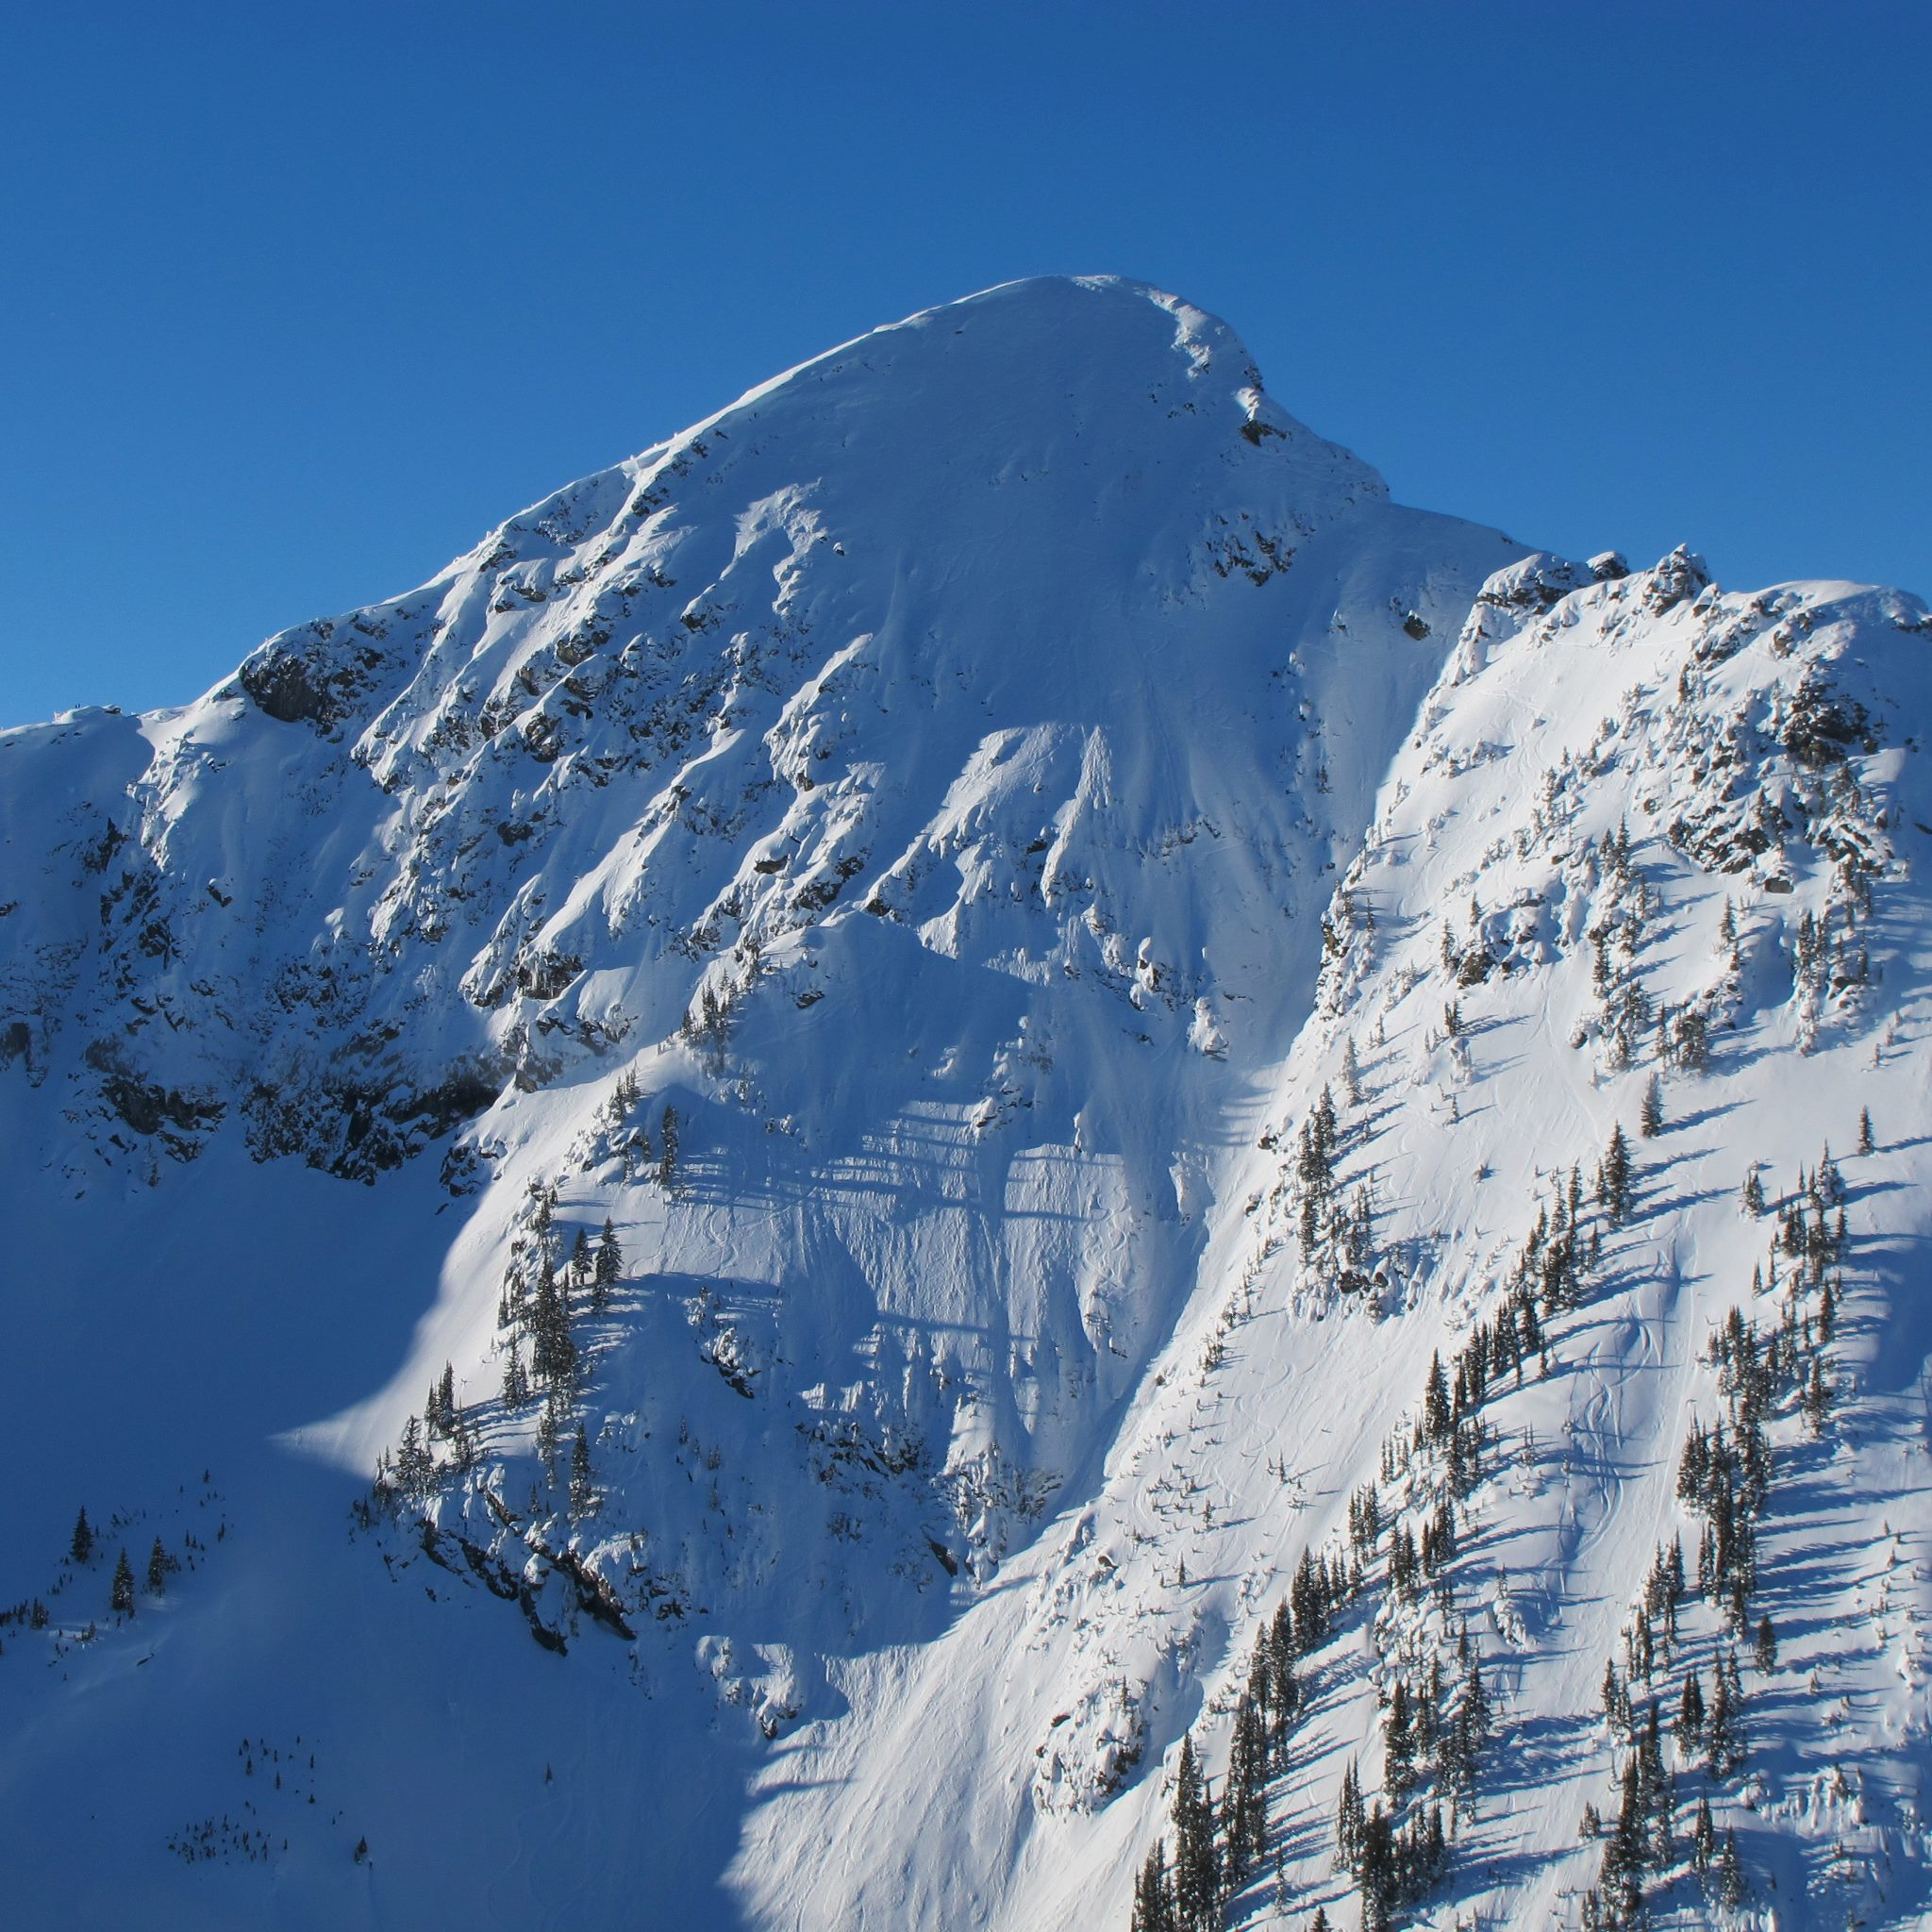 banff heli skiing with Canadian Ski Resort Opening Dates For 201516 on 488 further Crans Montana as well Banff National Park likewise Banff National Park also Hiking Johnston Canyon Banff National Park.